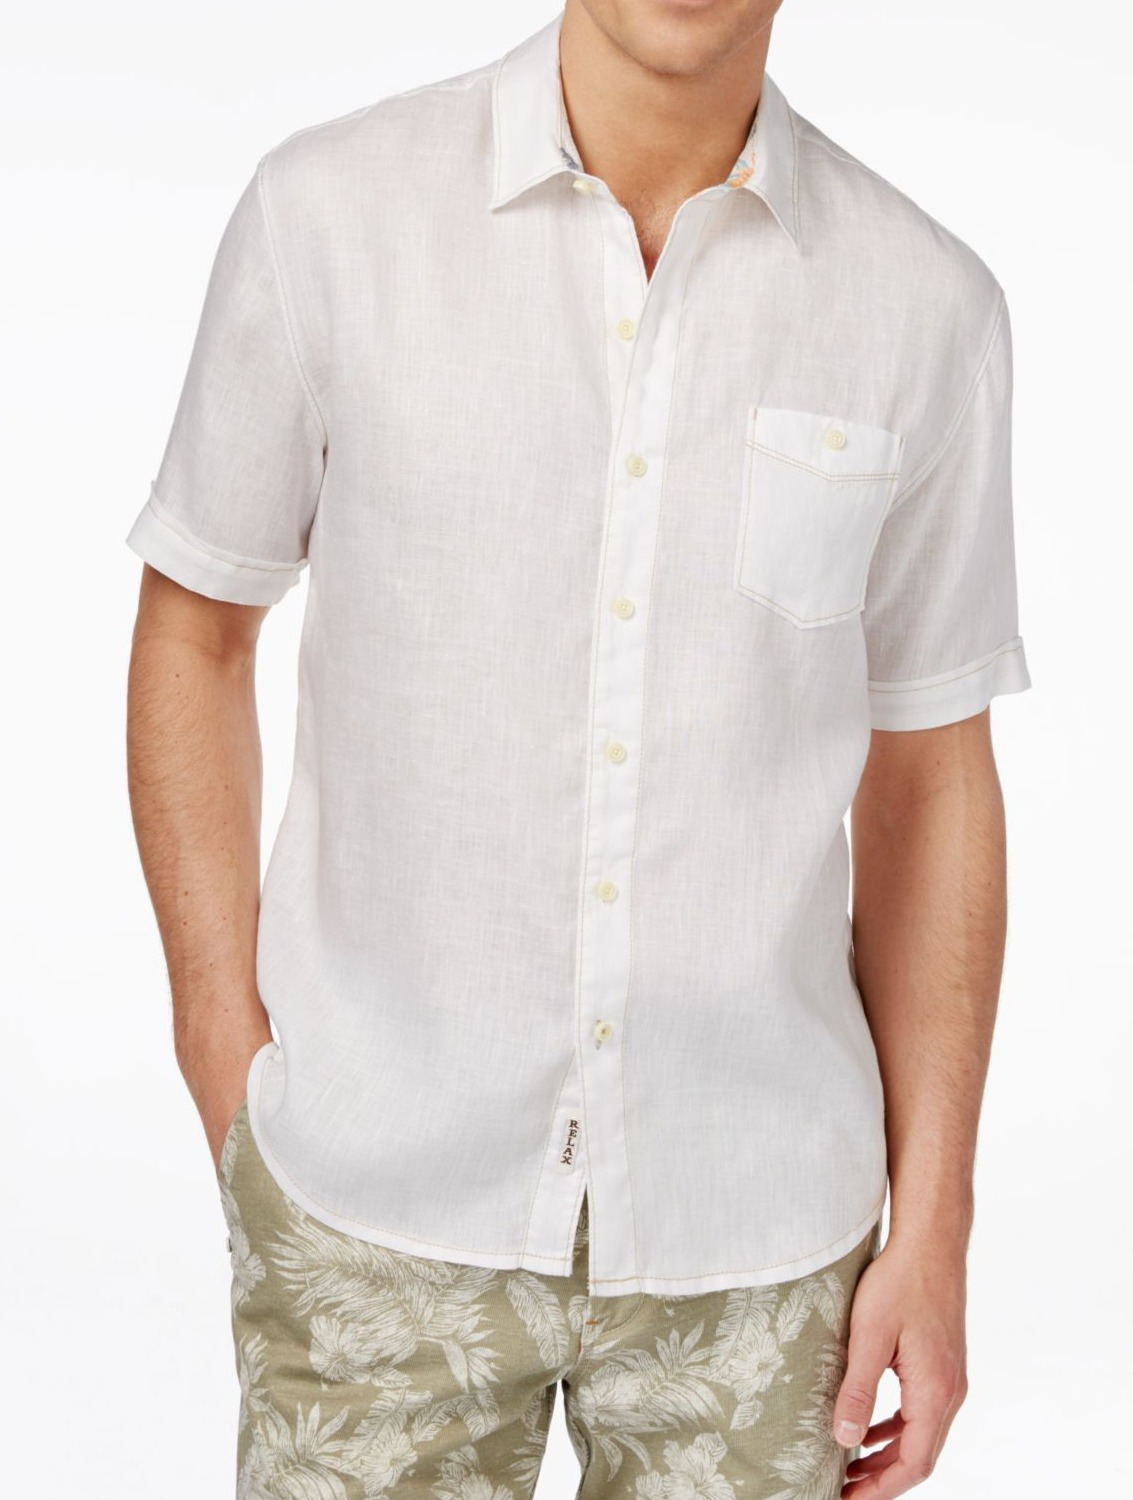 Tommy Bahama New White Mens Size Large L Front Pocket